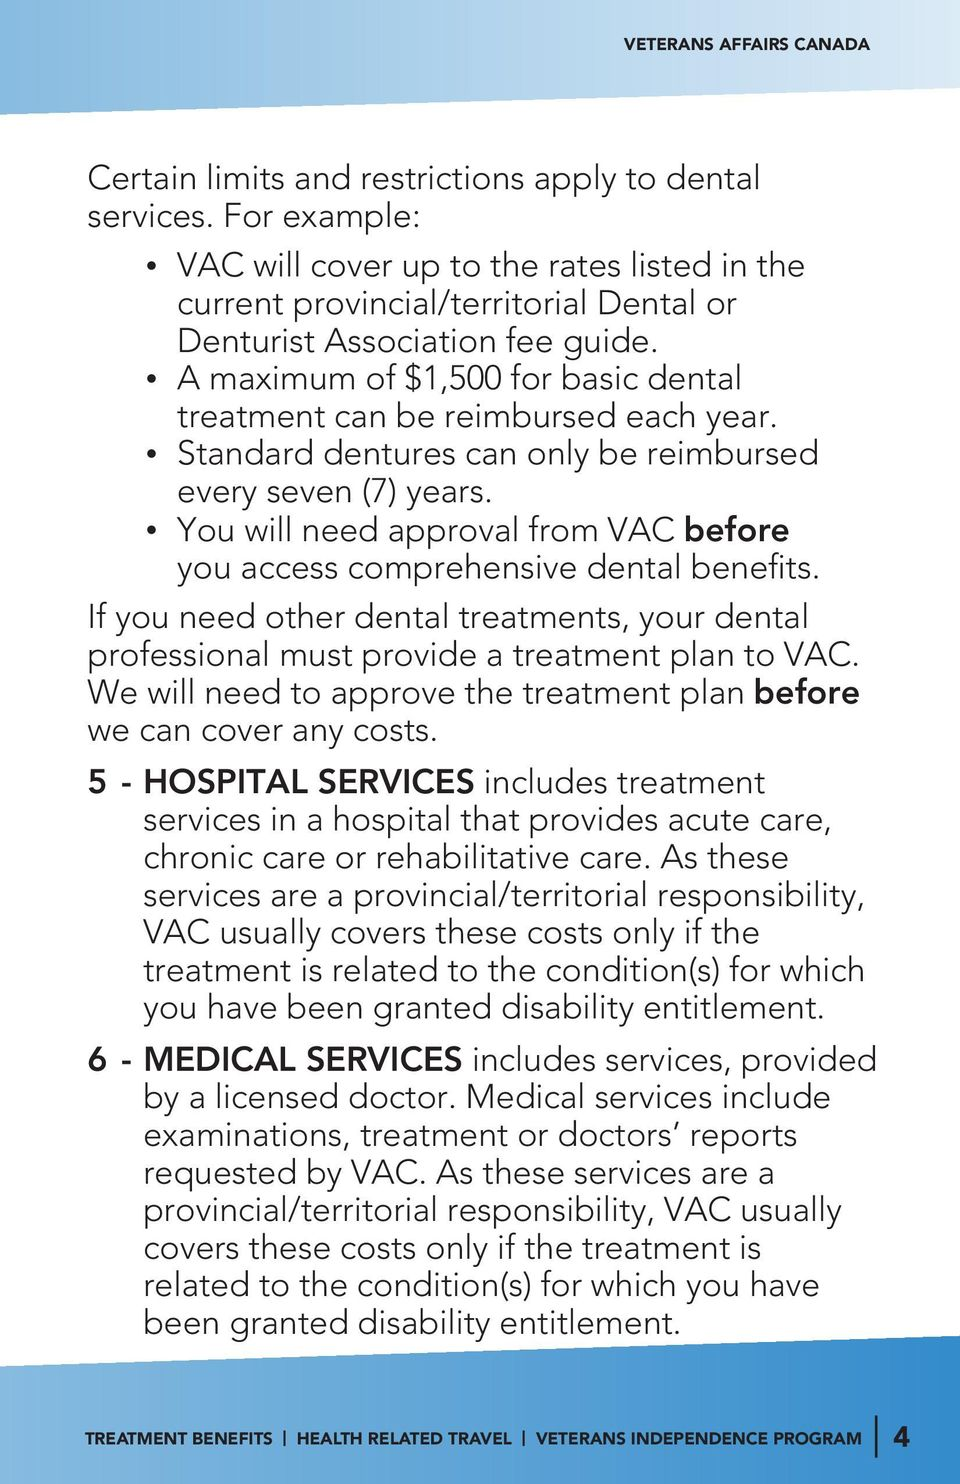 You will need approval from VAC before you access comprehensive dental benefits. If you need other dental treatments, your dental professional must provide a treatment plan to VAC.